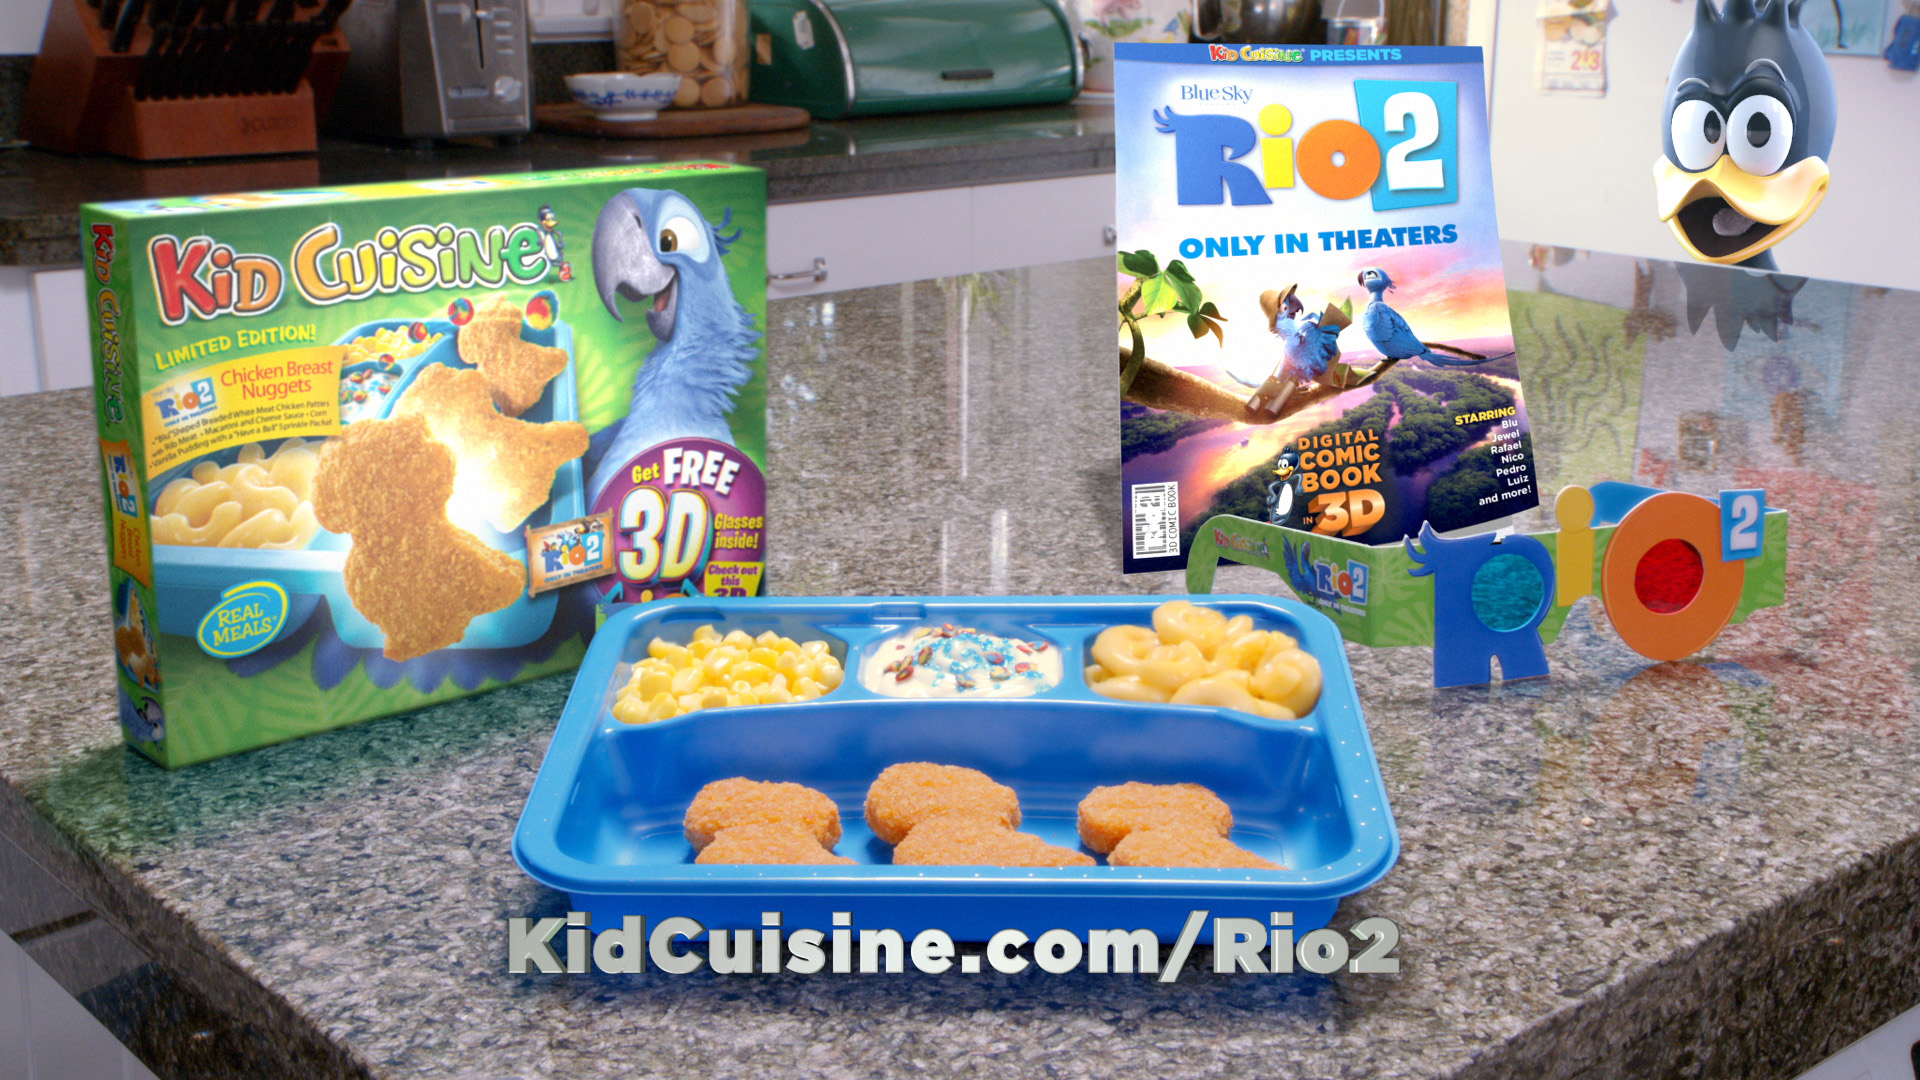 kid_cuisine_dinner_and_a_show_image05